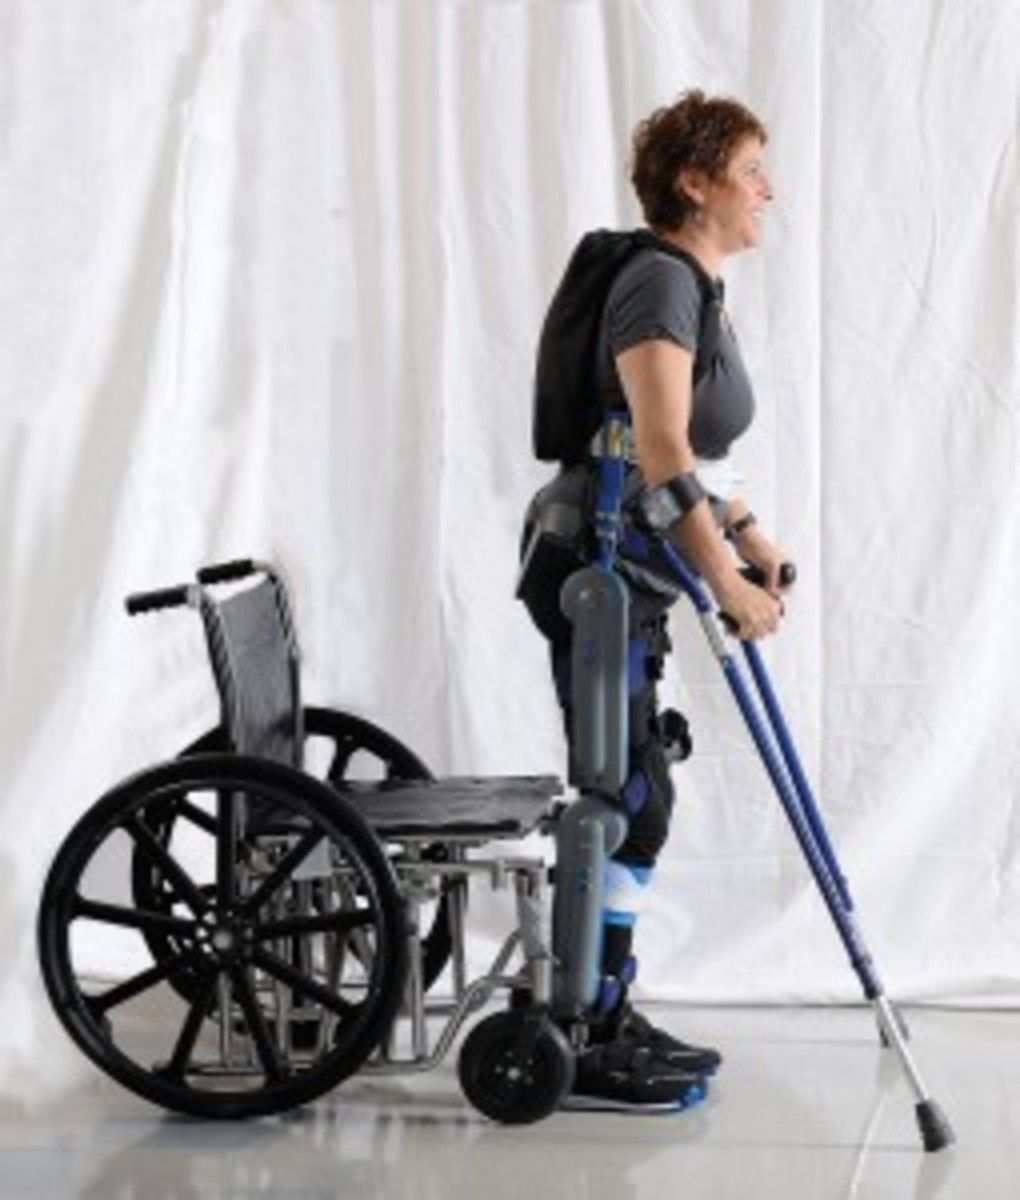 Rehabilitation can be challenging.